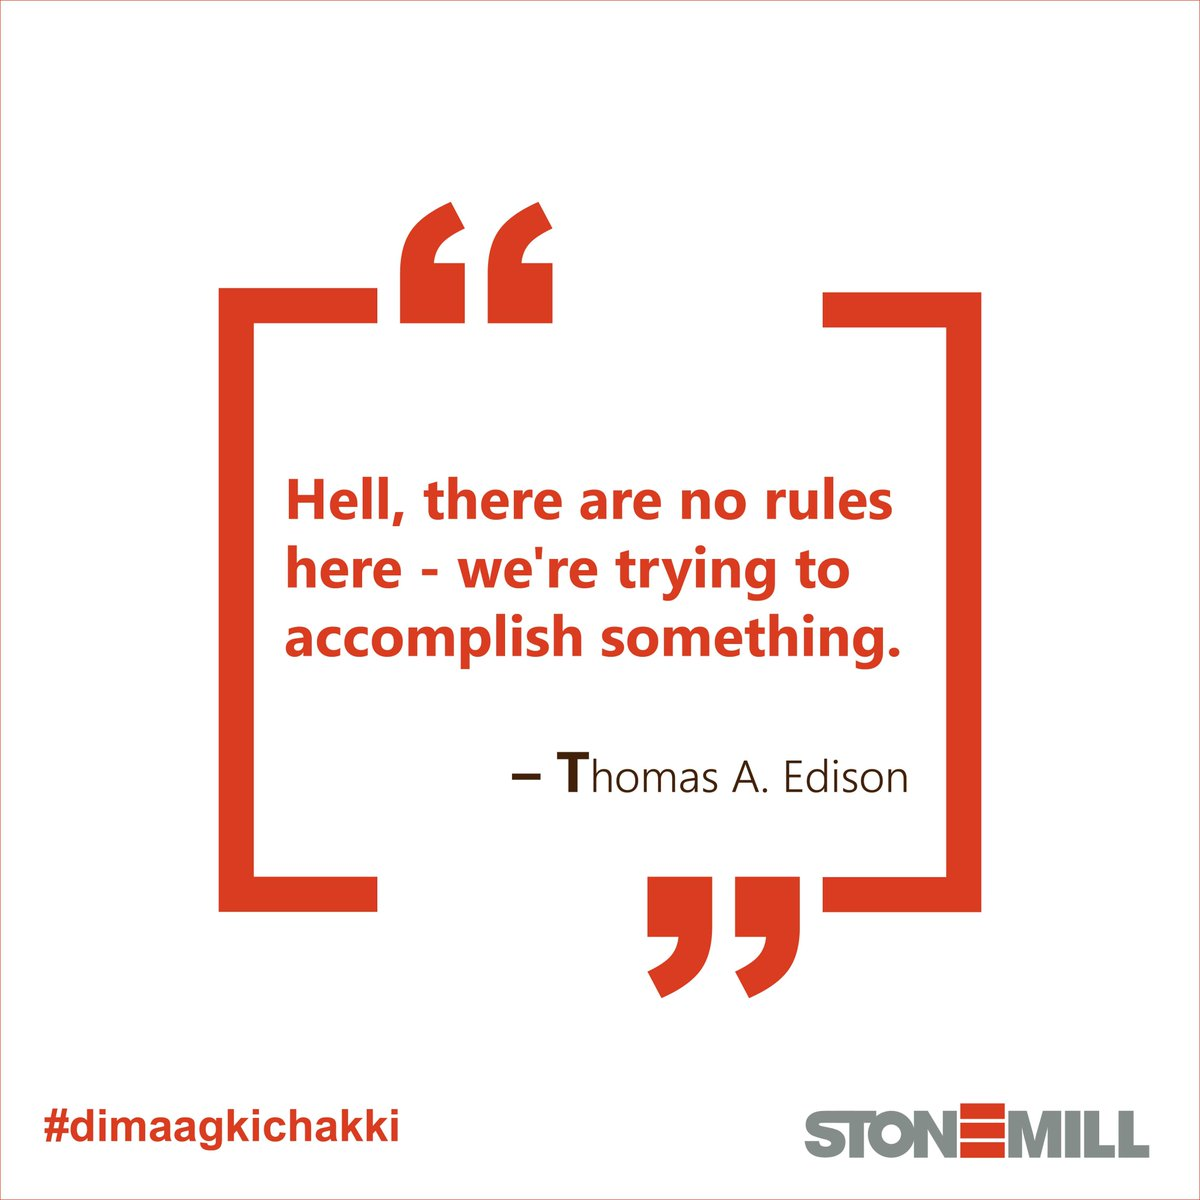 Thinking out of the box does bending certain rules. Which is why our services are unique, creative and customized for our clients.   #wednesdaythought #thomasedison #innovation #science #entrepreneurship #startup #webinar #writingcommunity #writers #inspirational #dimaagkichakki